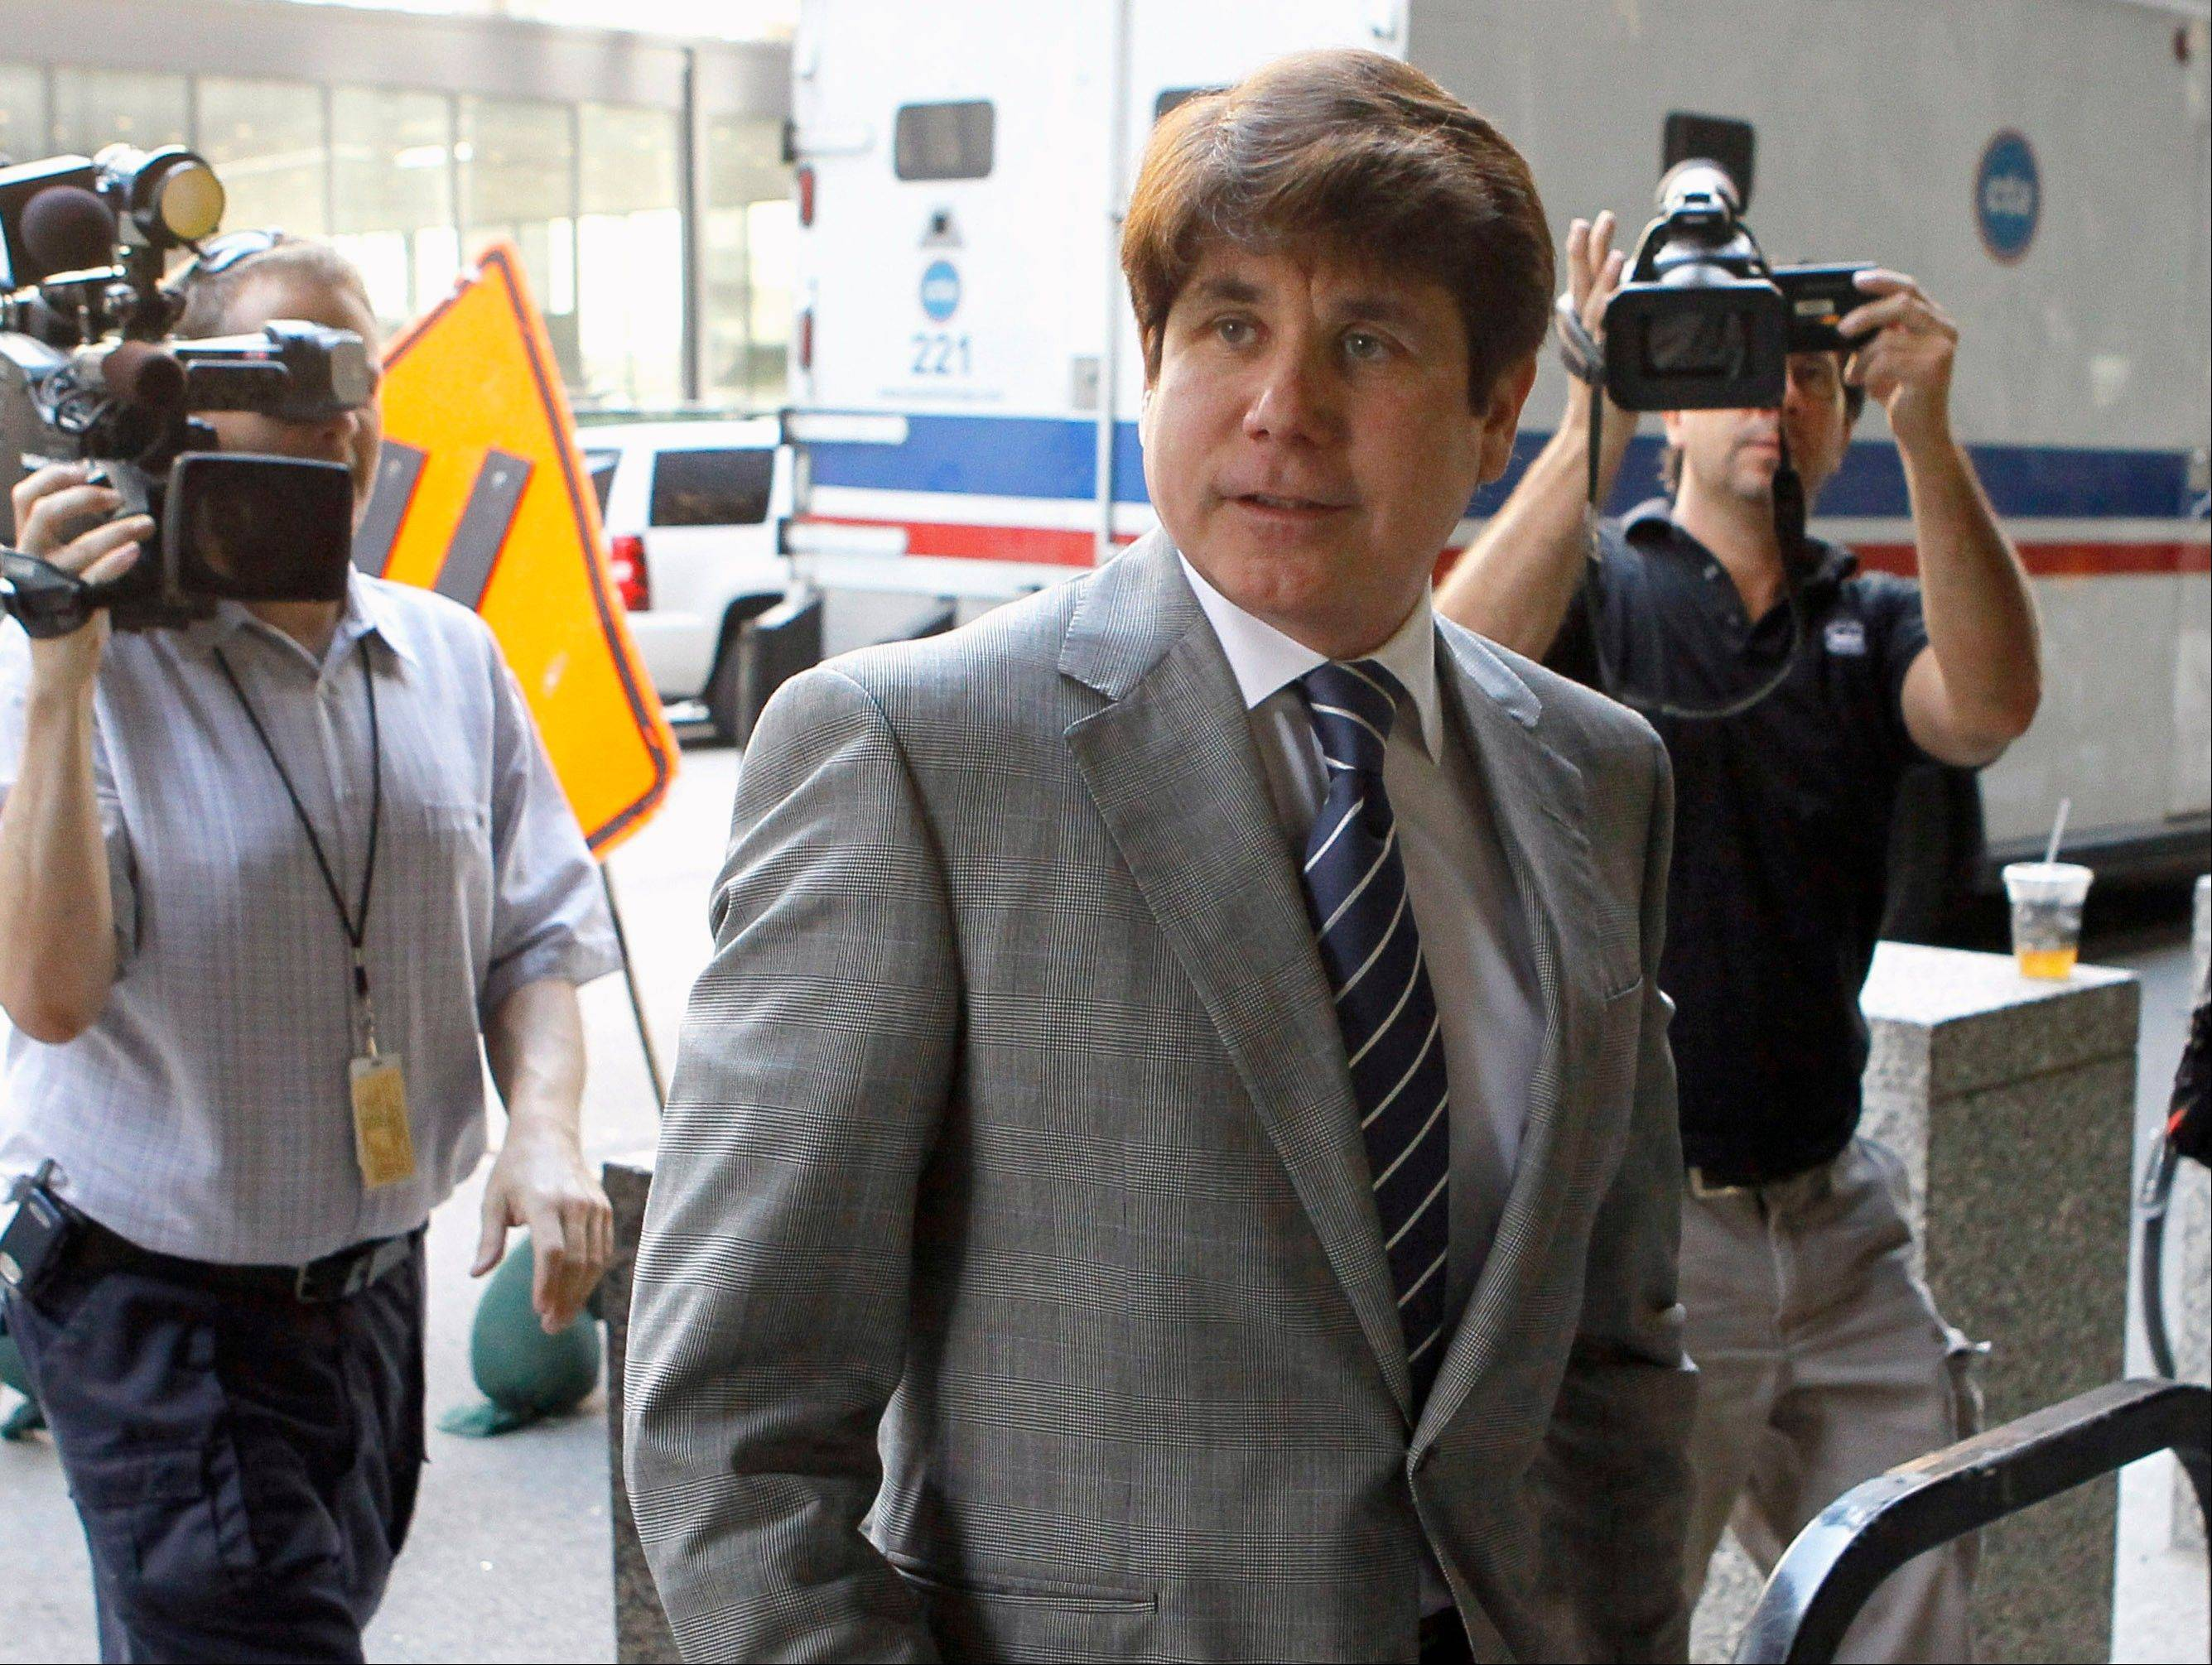 Former Gov. Rod Blagojevich was convicted in June on multiple corruption charges. His attorneys claim he was deprived the �presumption of innocence.�